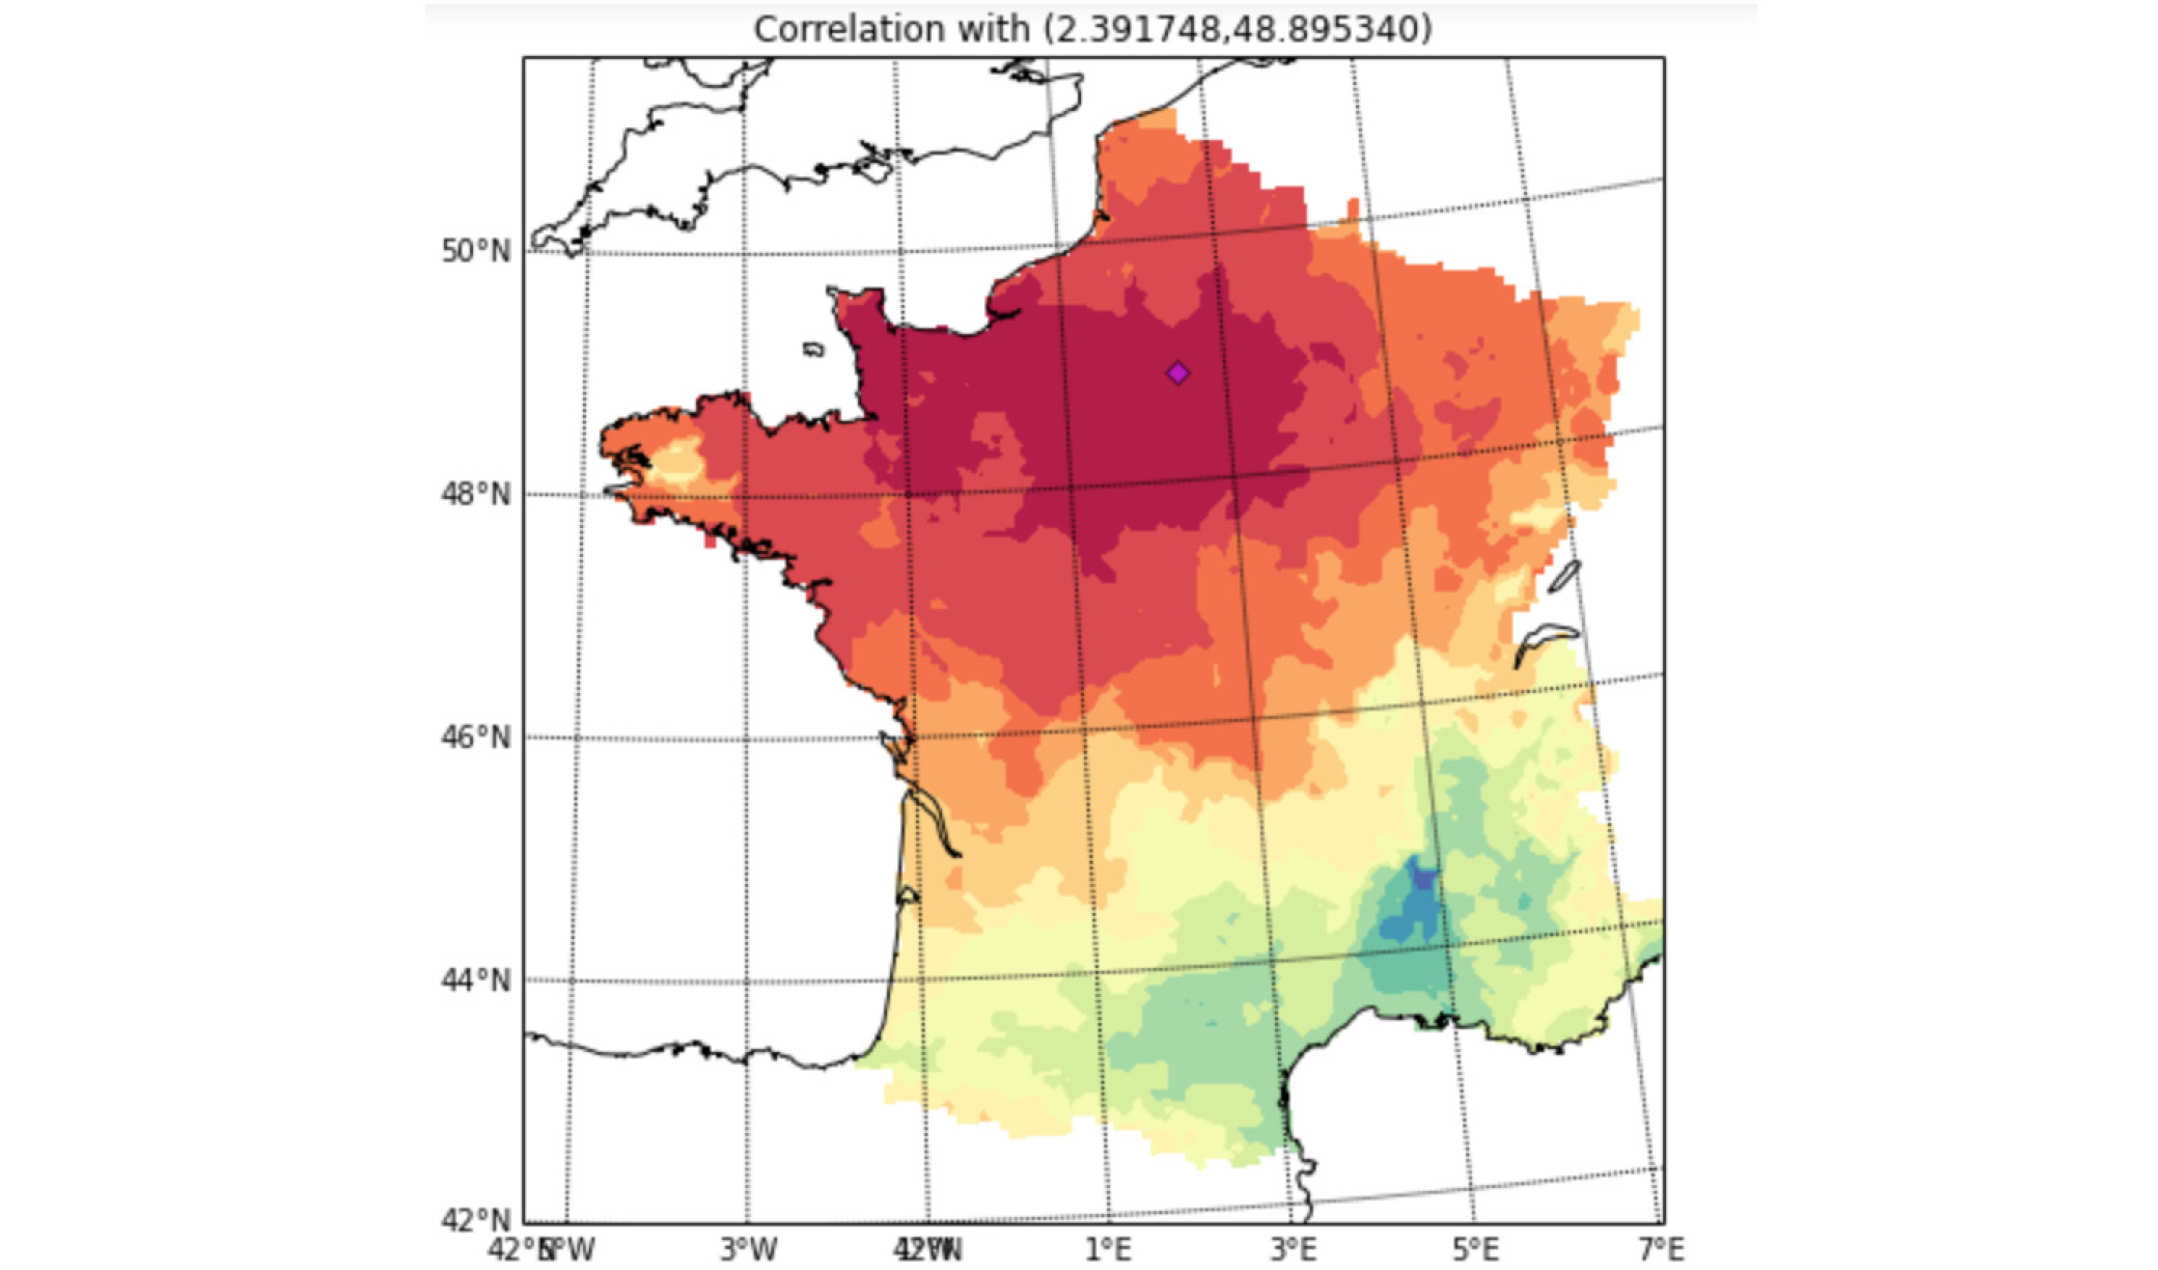 The graph shows the correlation between the wind speed observed in different parts of France and the wind speed observed in Paris 6 hours later. It illustrates the importance of precise multidimensional modelling of wind speed field for precise forecasting of wind power generation.